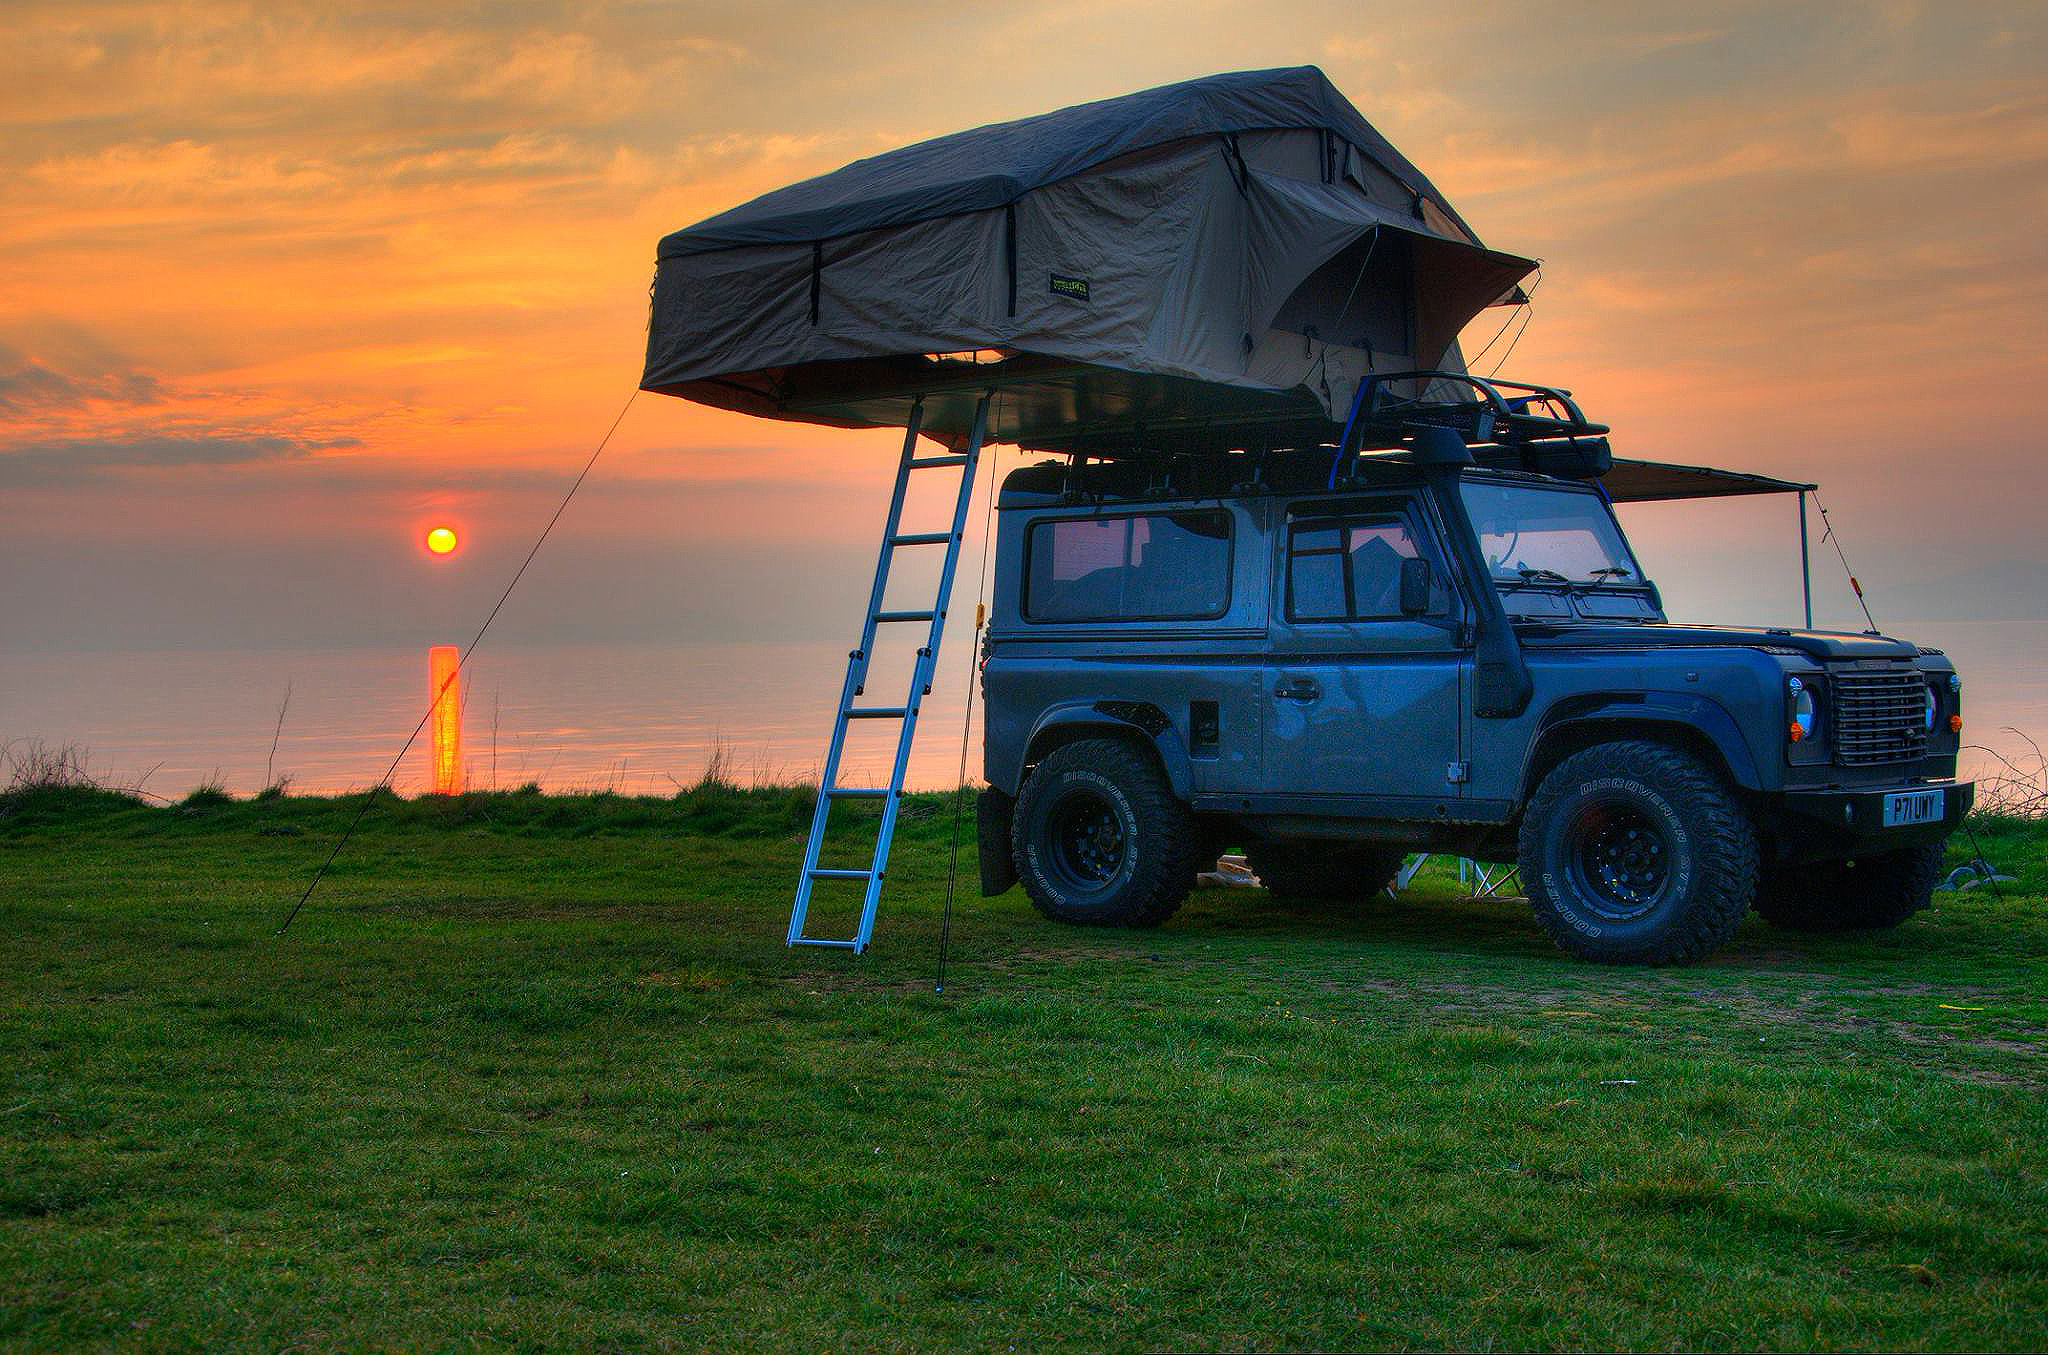 Details about Land Rover Defender 3 Man Roof Tent + Full Roof Rack Outdoor  Camping Camper